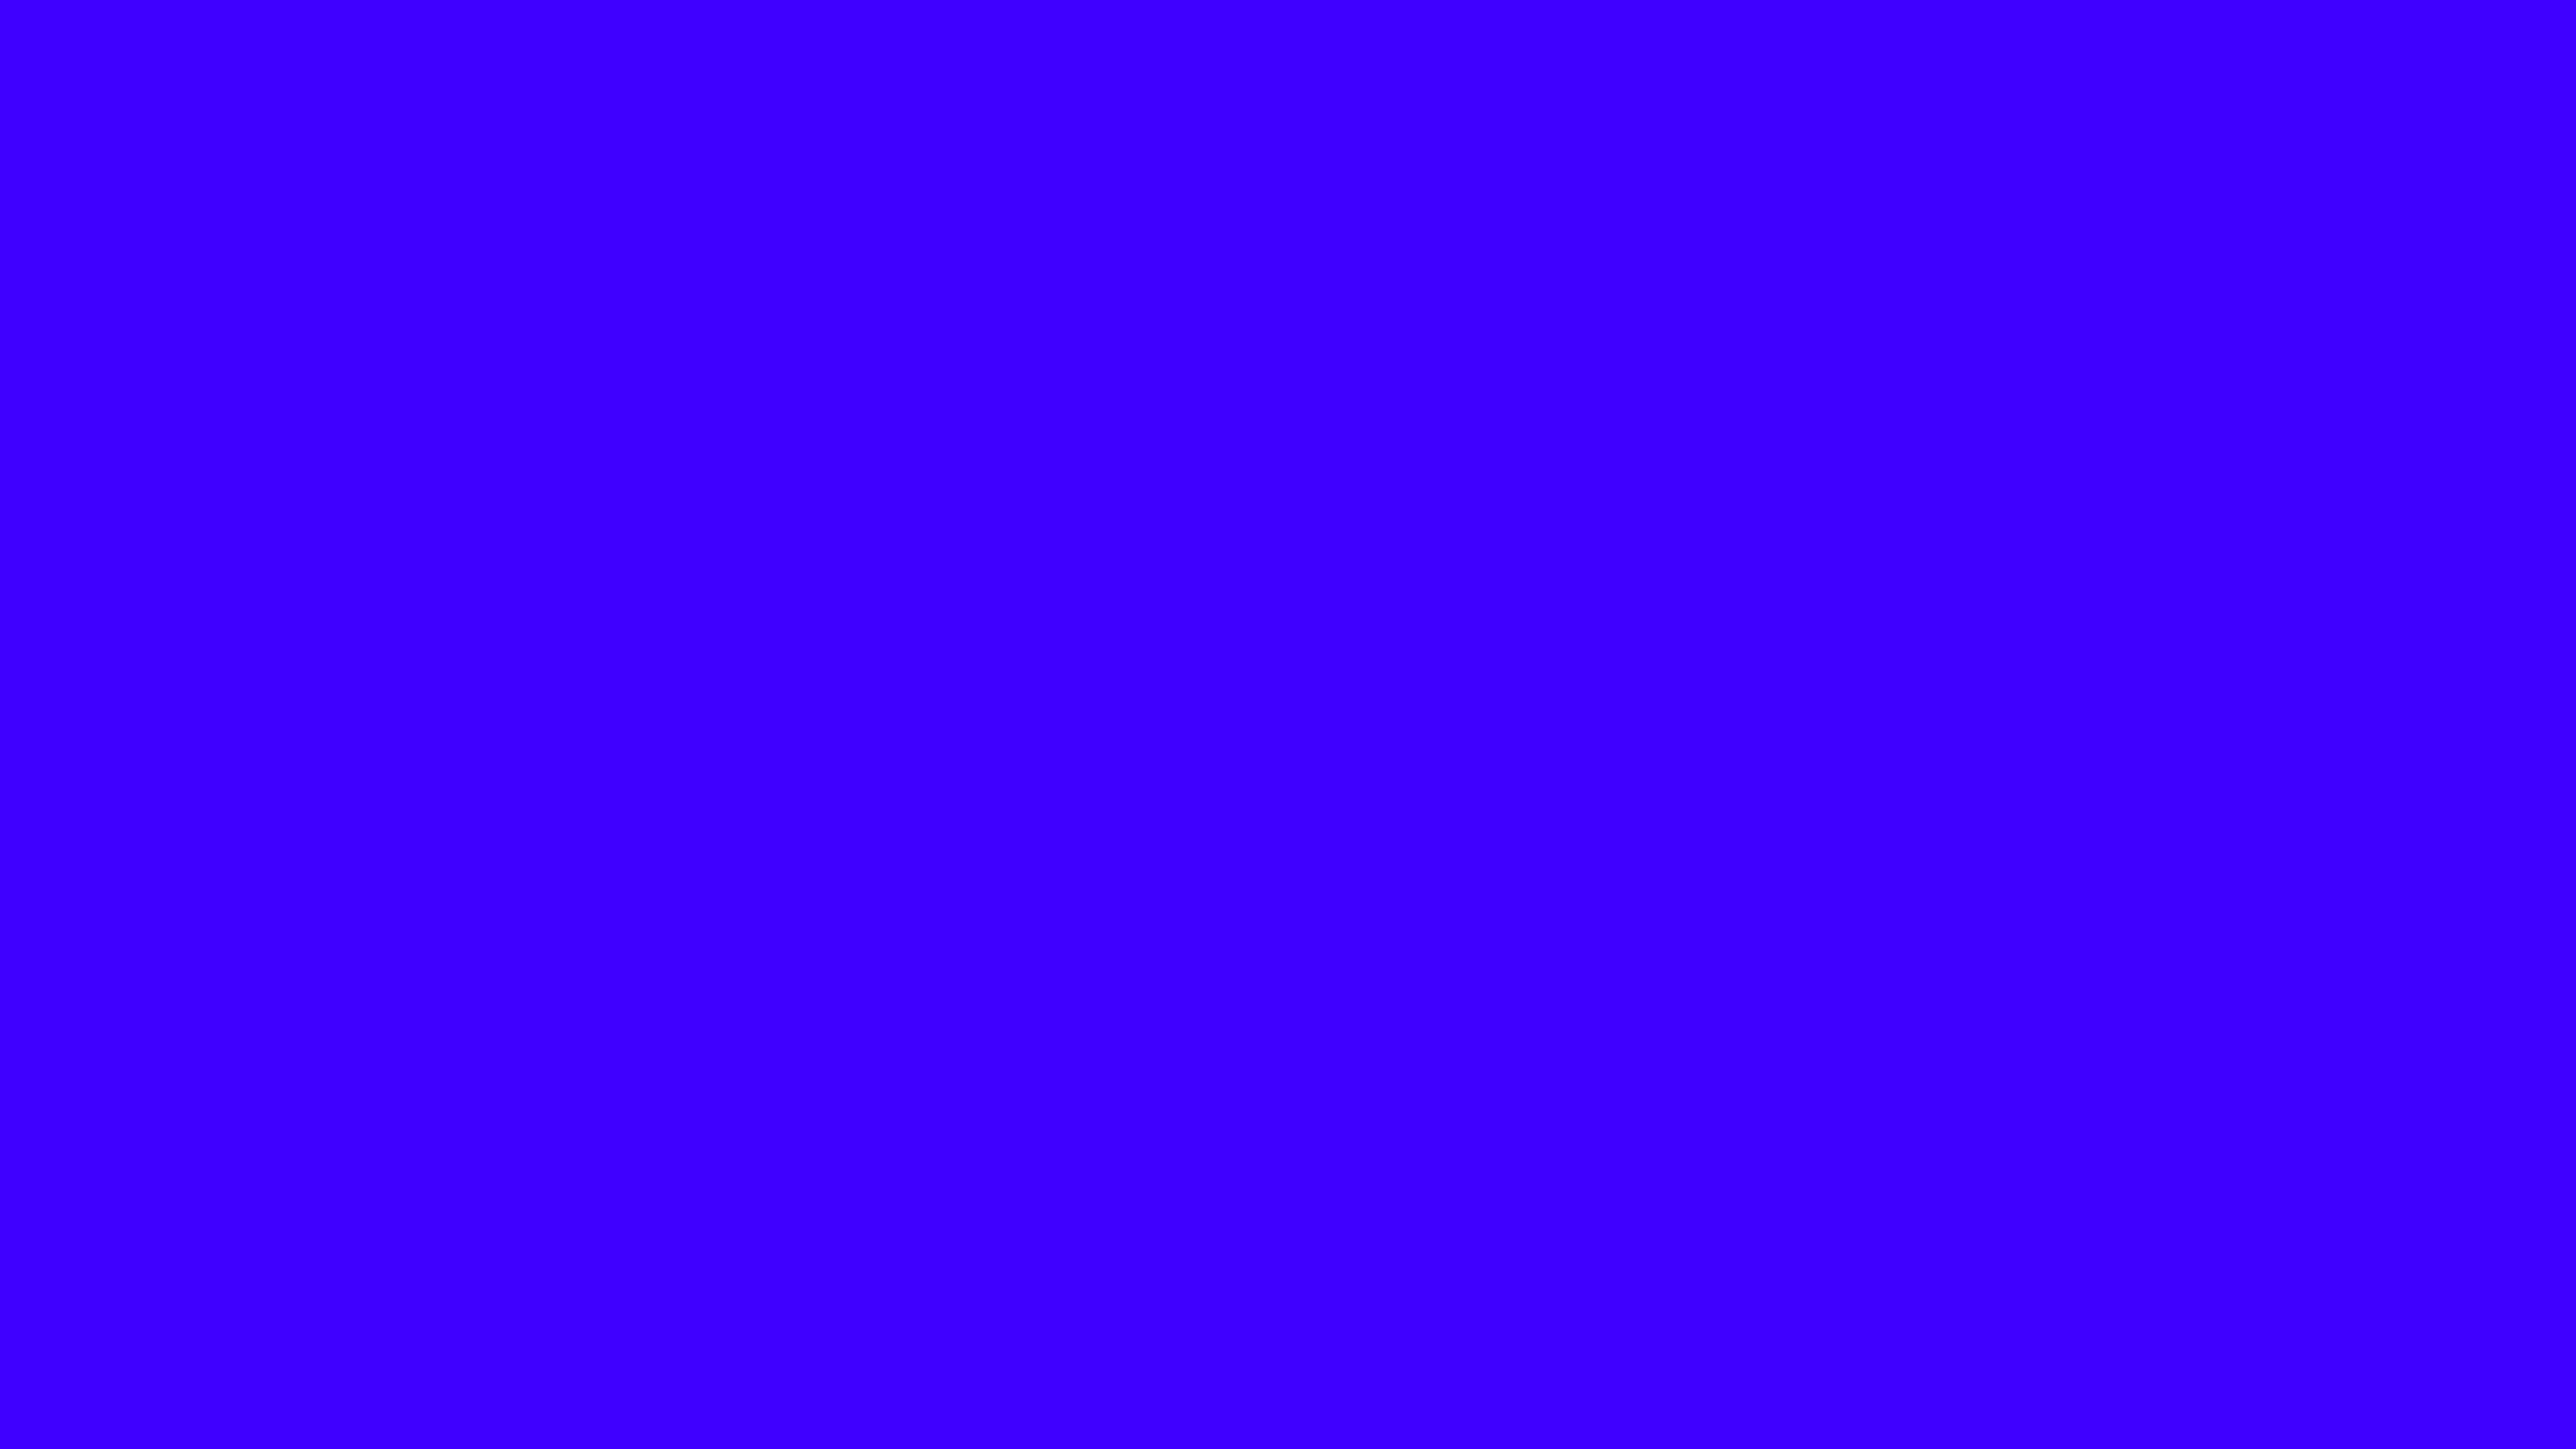 7680x4320 Electric Ultramarine Solid Color Background